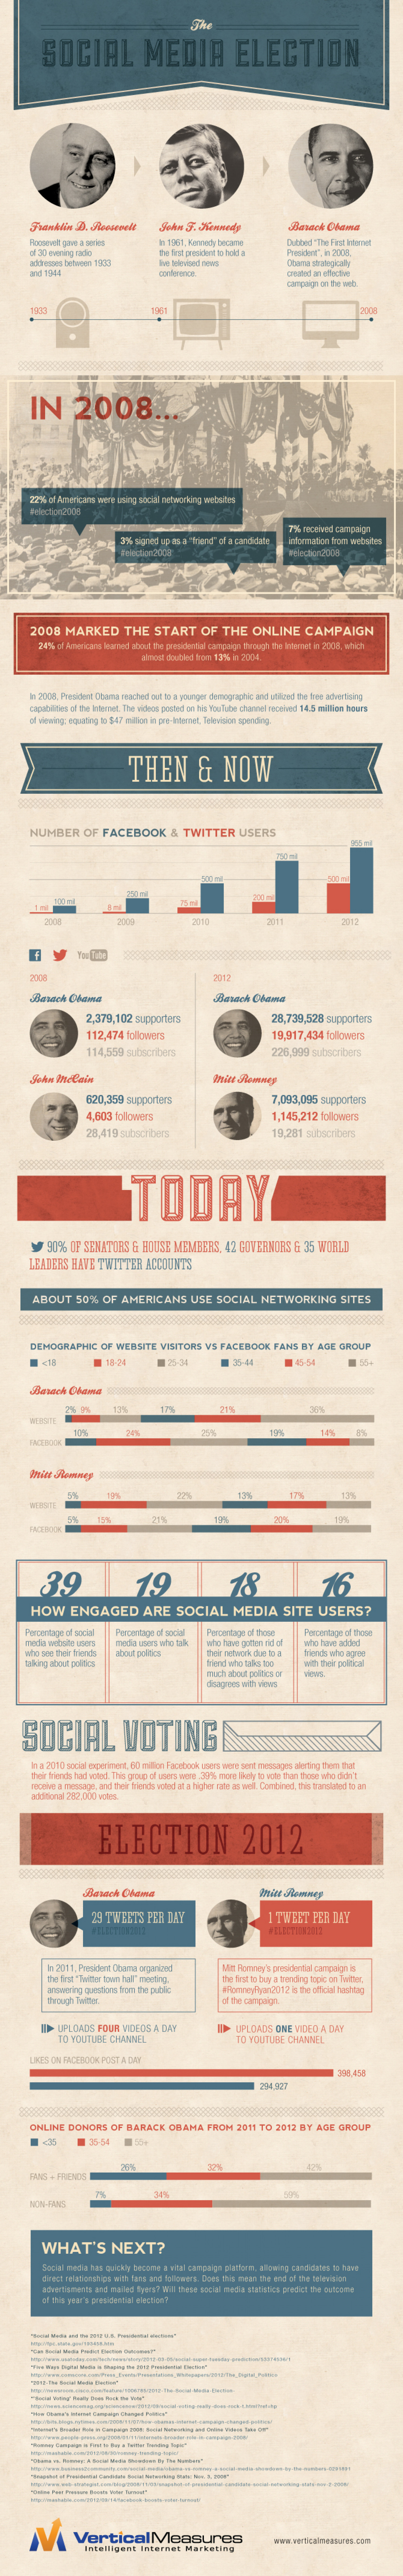 The Social Media Election Infographic